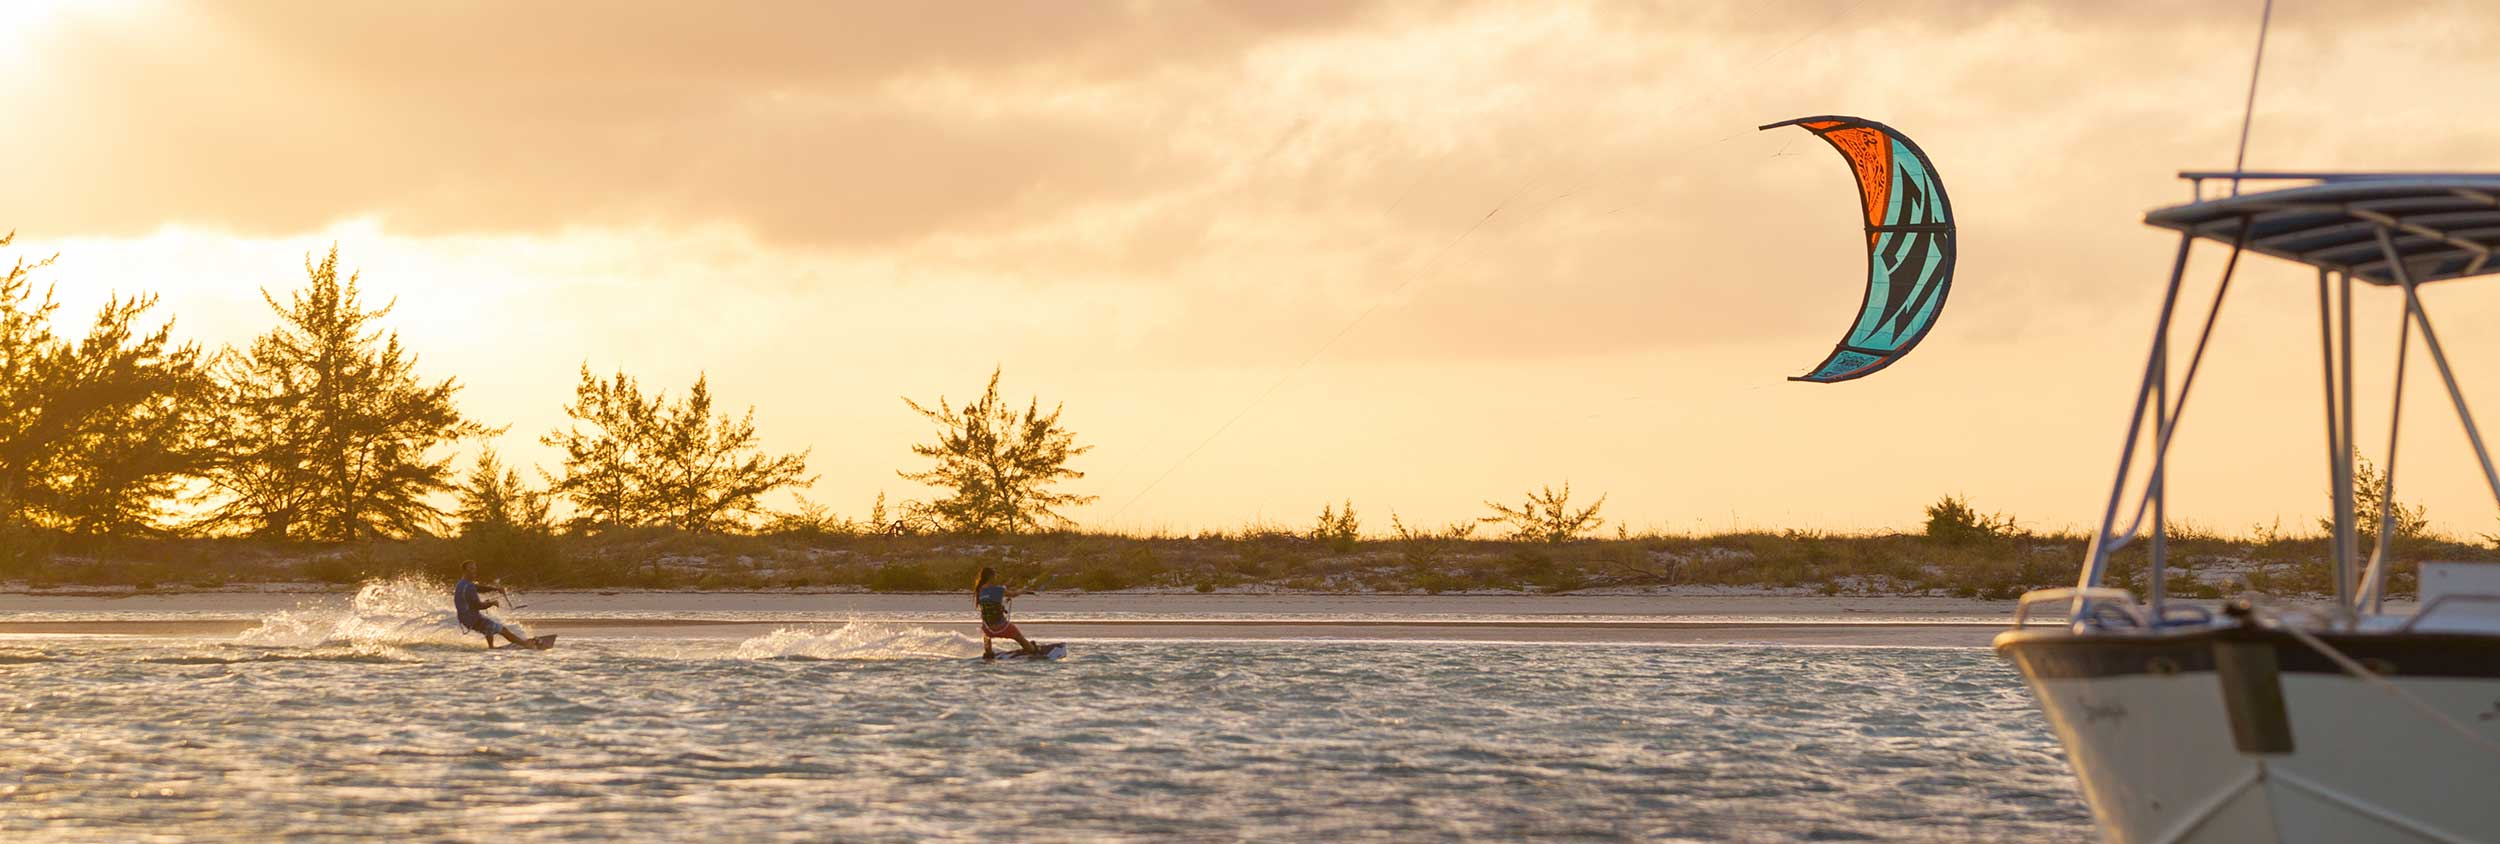 Hope Levin Kiteboarding in the Turks and Caicos Islands